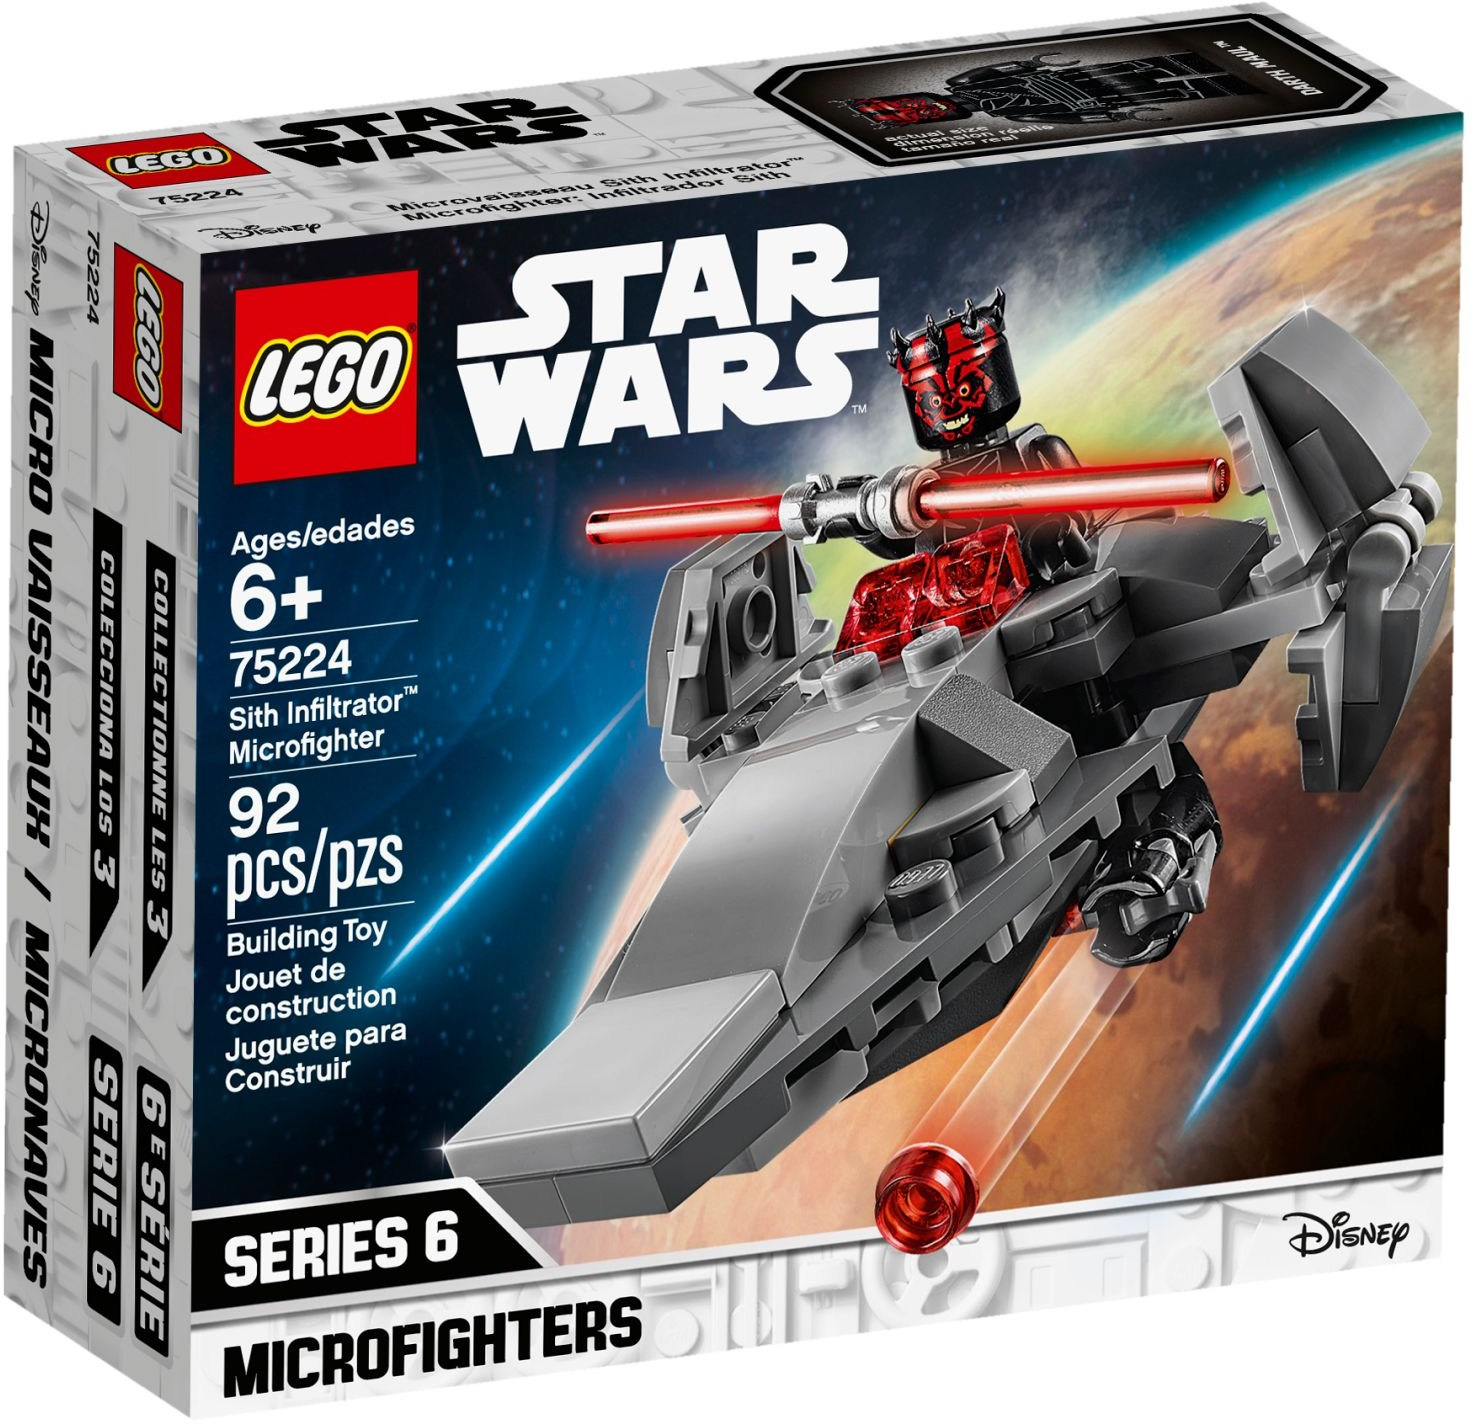 75224 Sith Infiltrator Microfighter